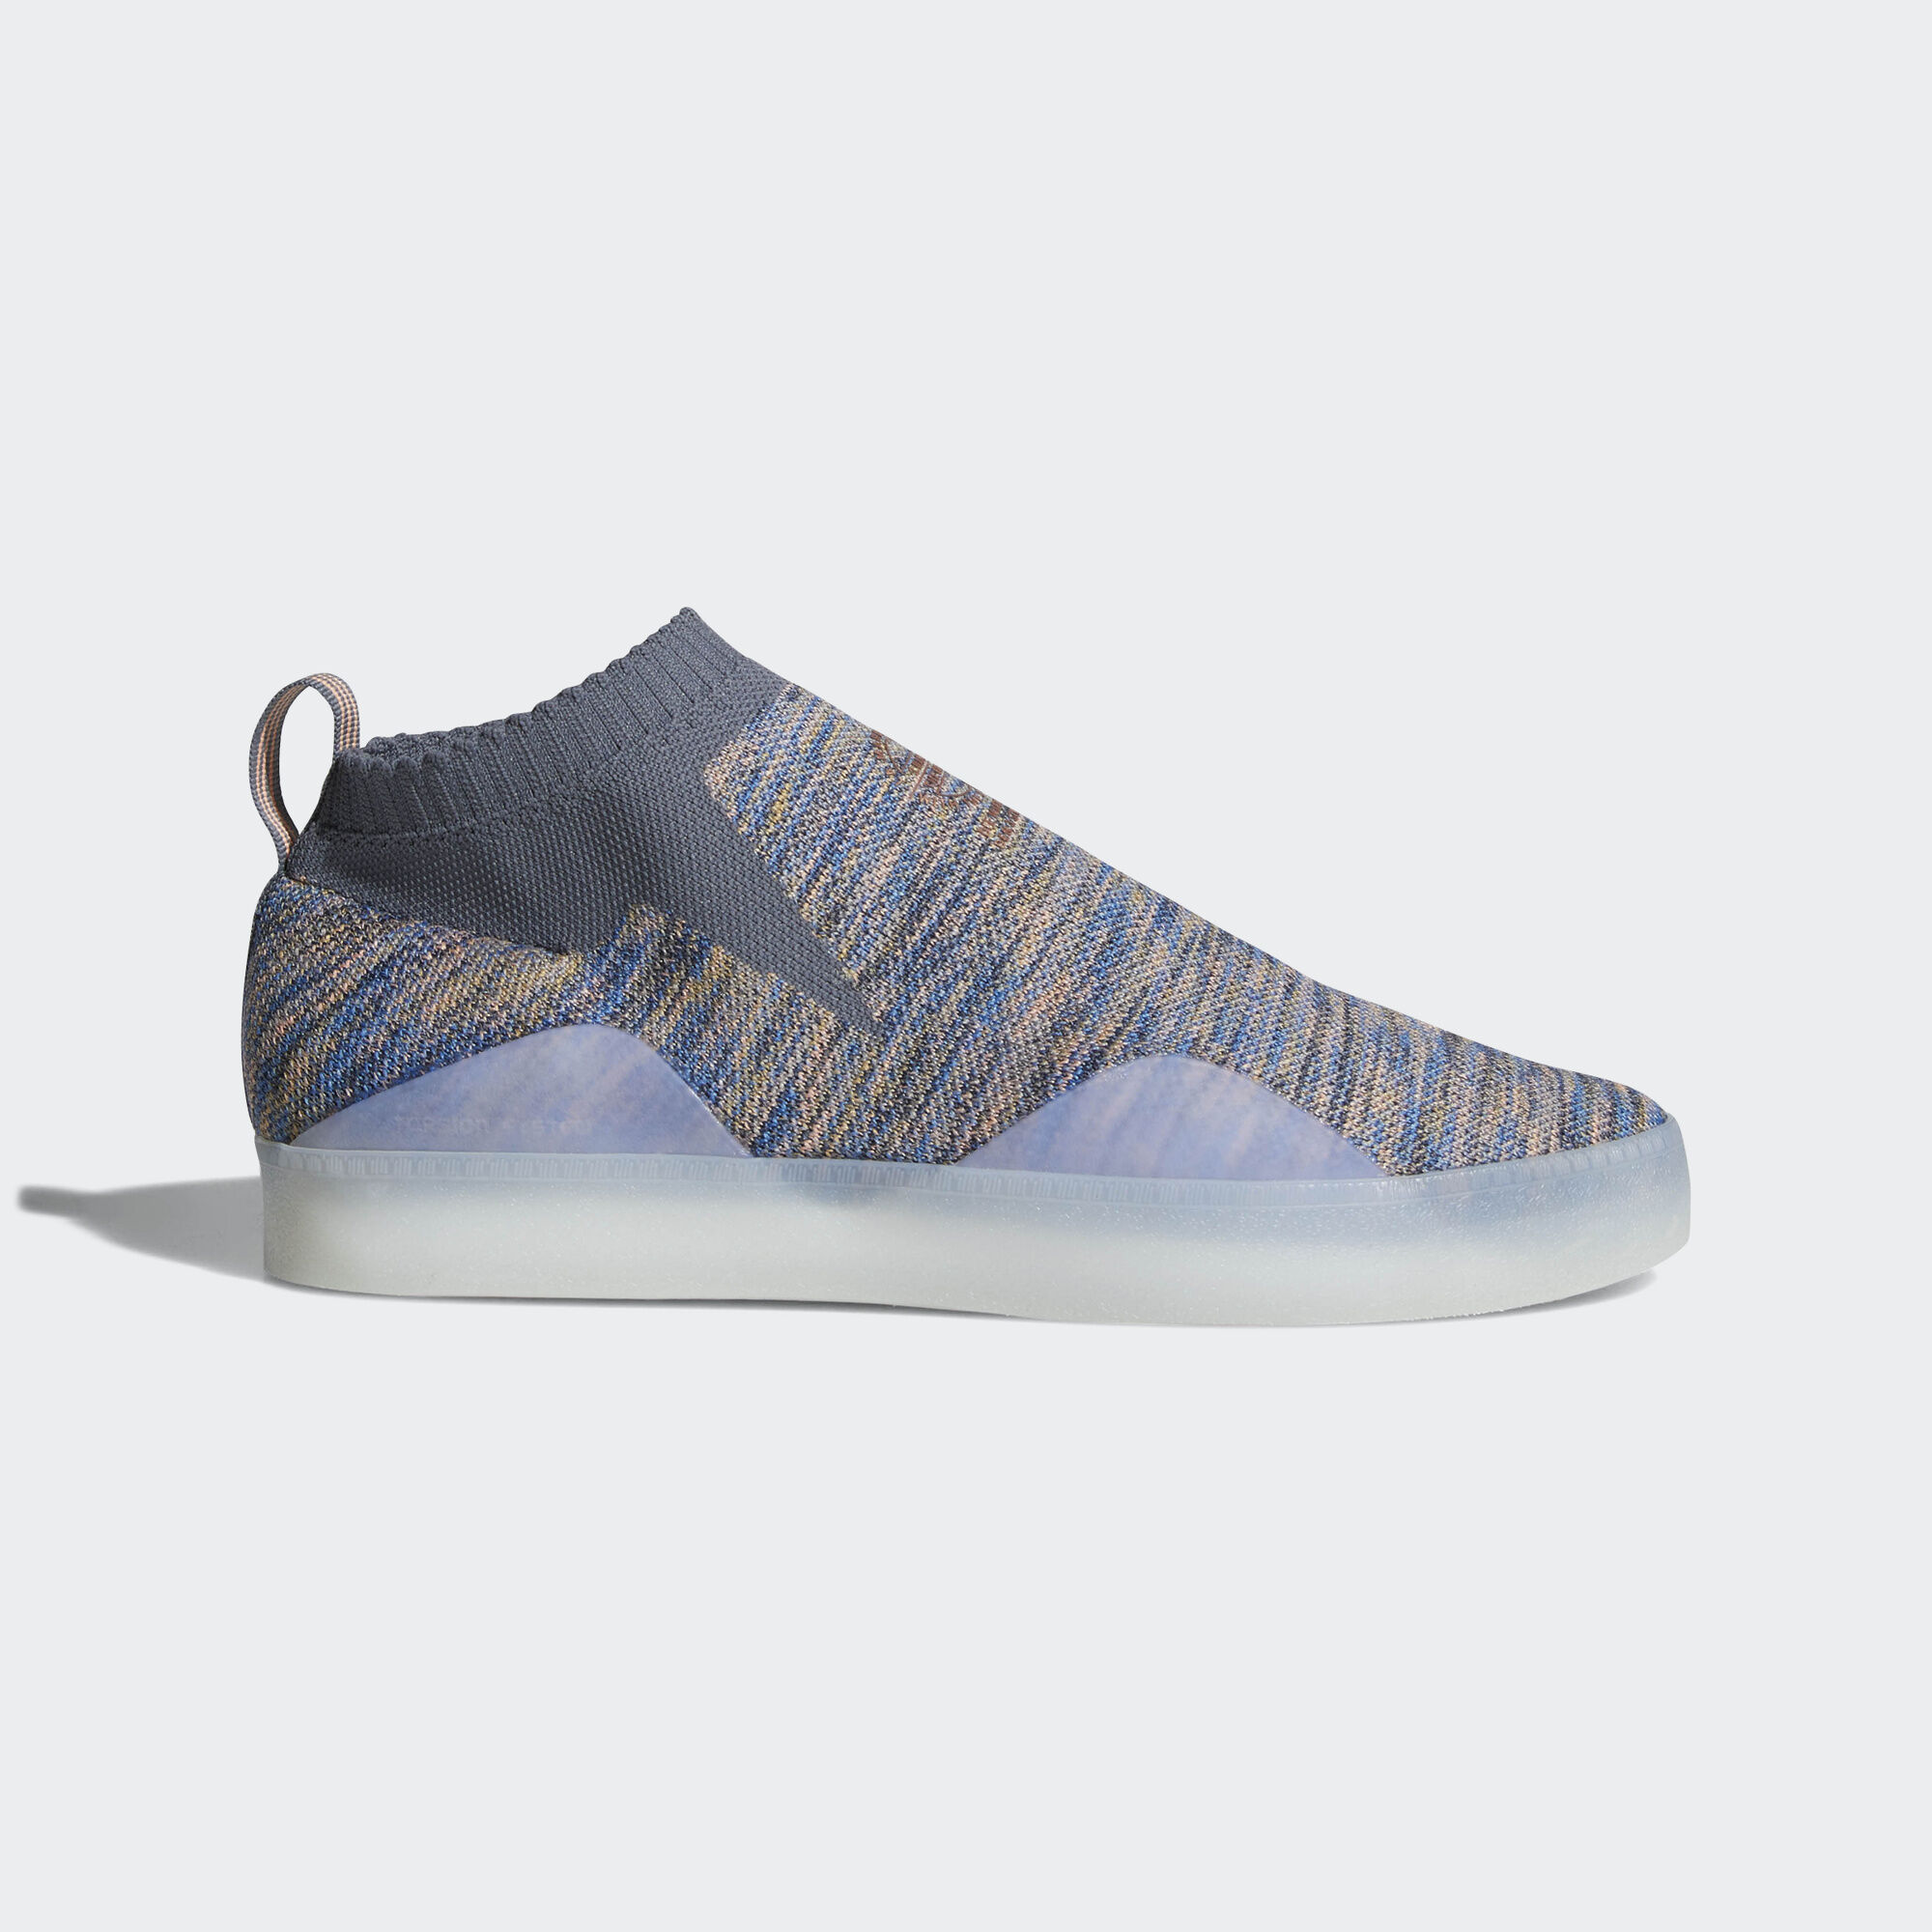 low priced bfedd 2dd78 adidas - 3ST.002 Primeknit Shoes Onix  Trace Royal  Chalk Coral B41689